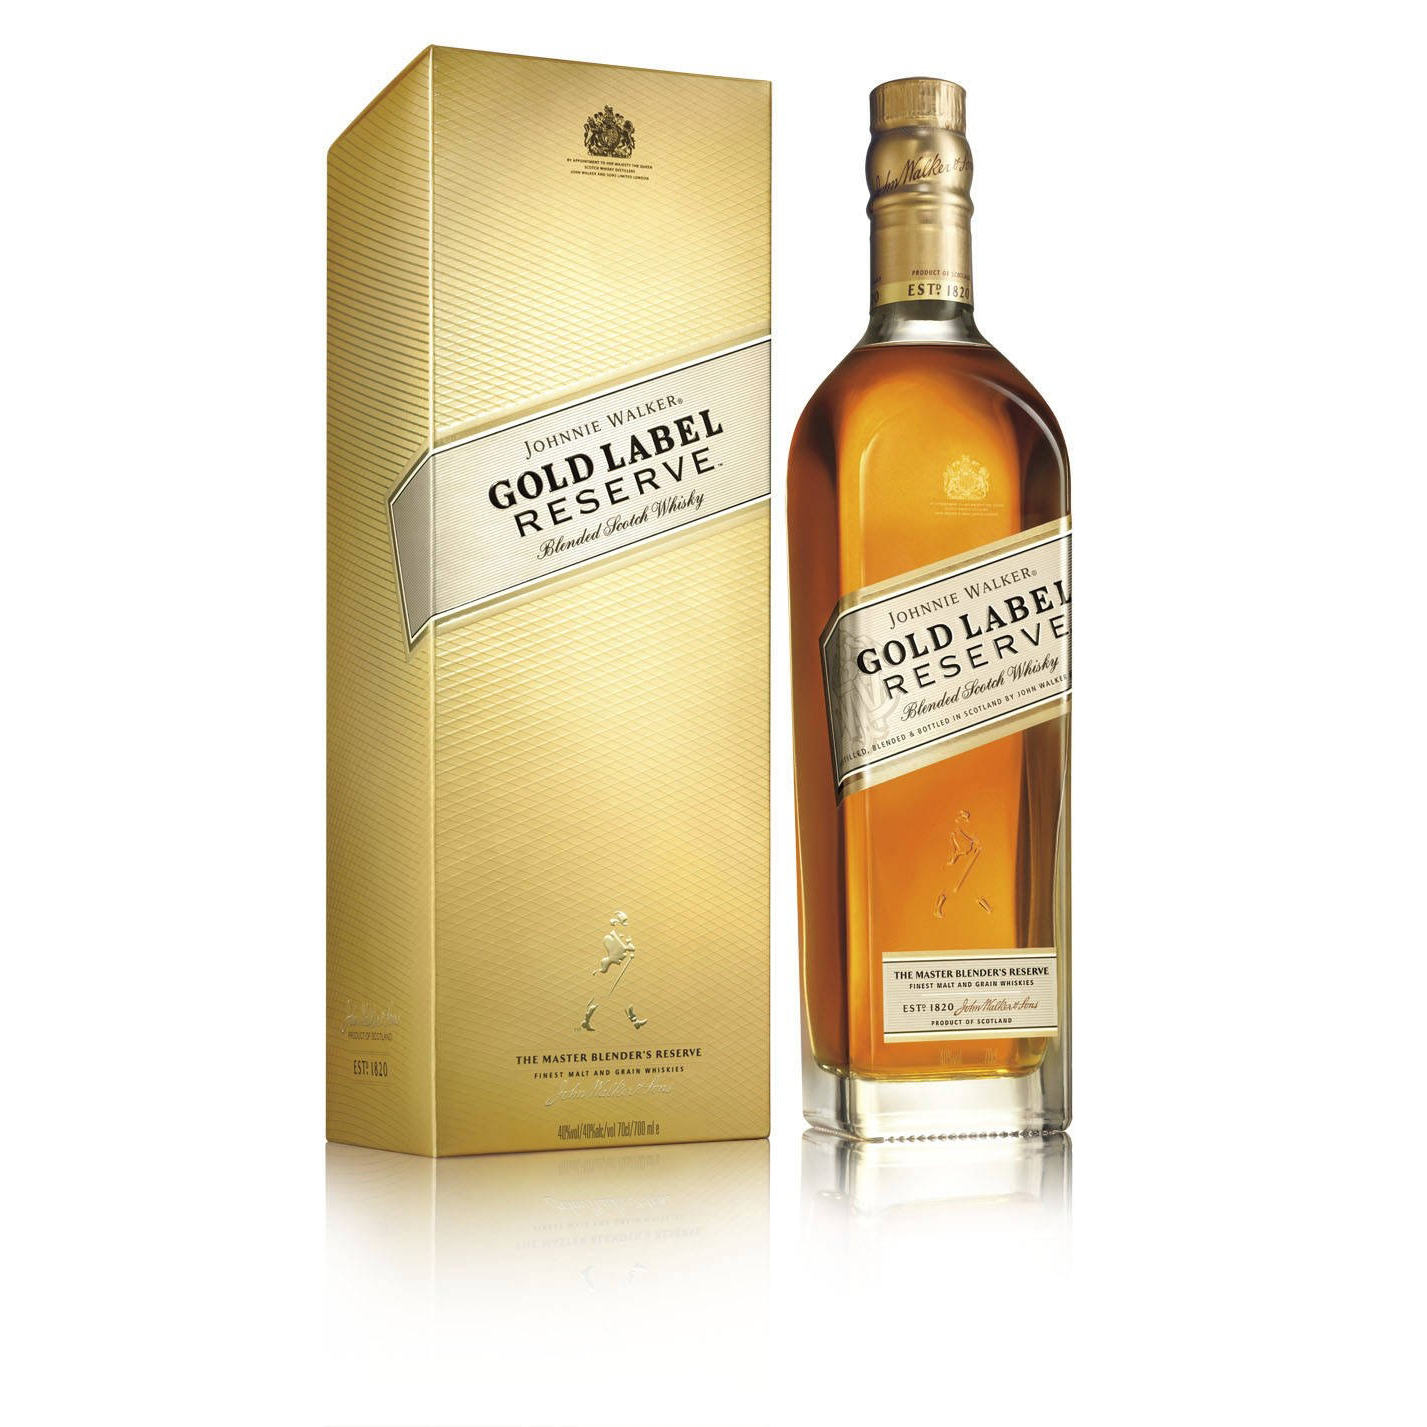 Johnnie Walker Gold Label Reserve Premium Blended Scotch